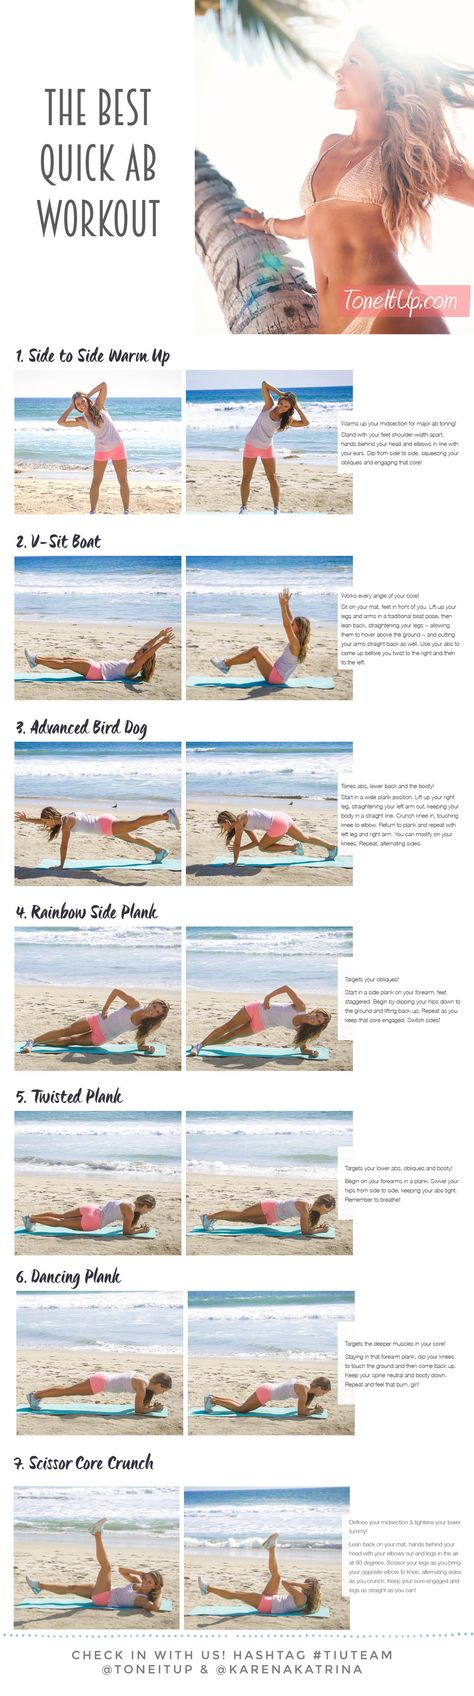 Summer abs in 7 minutes! http://leanwife.com/body-sculpting-fitness-workouts-for-women-101/